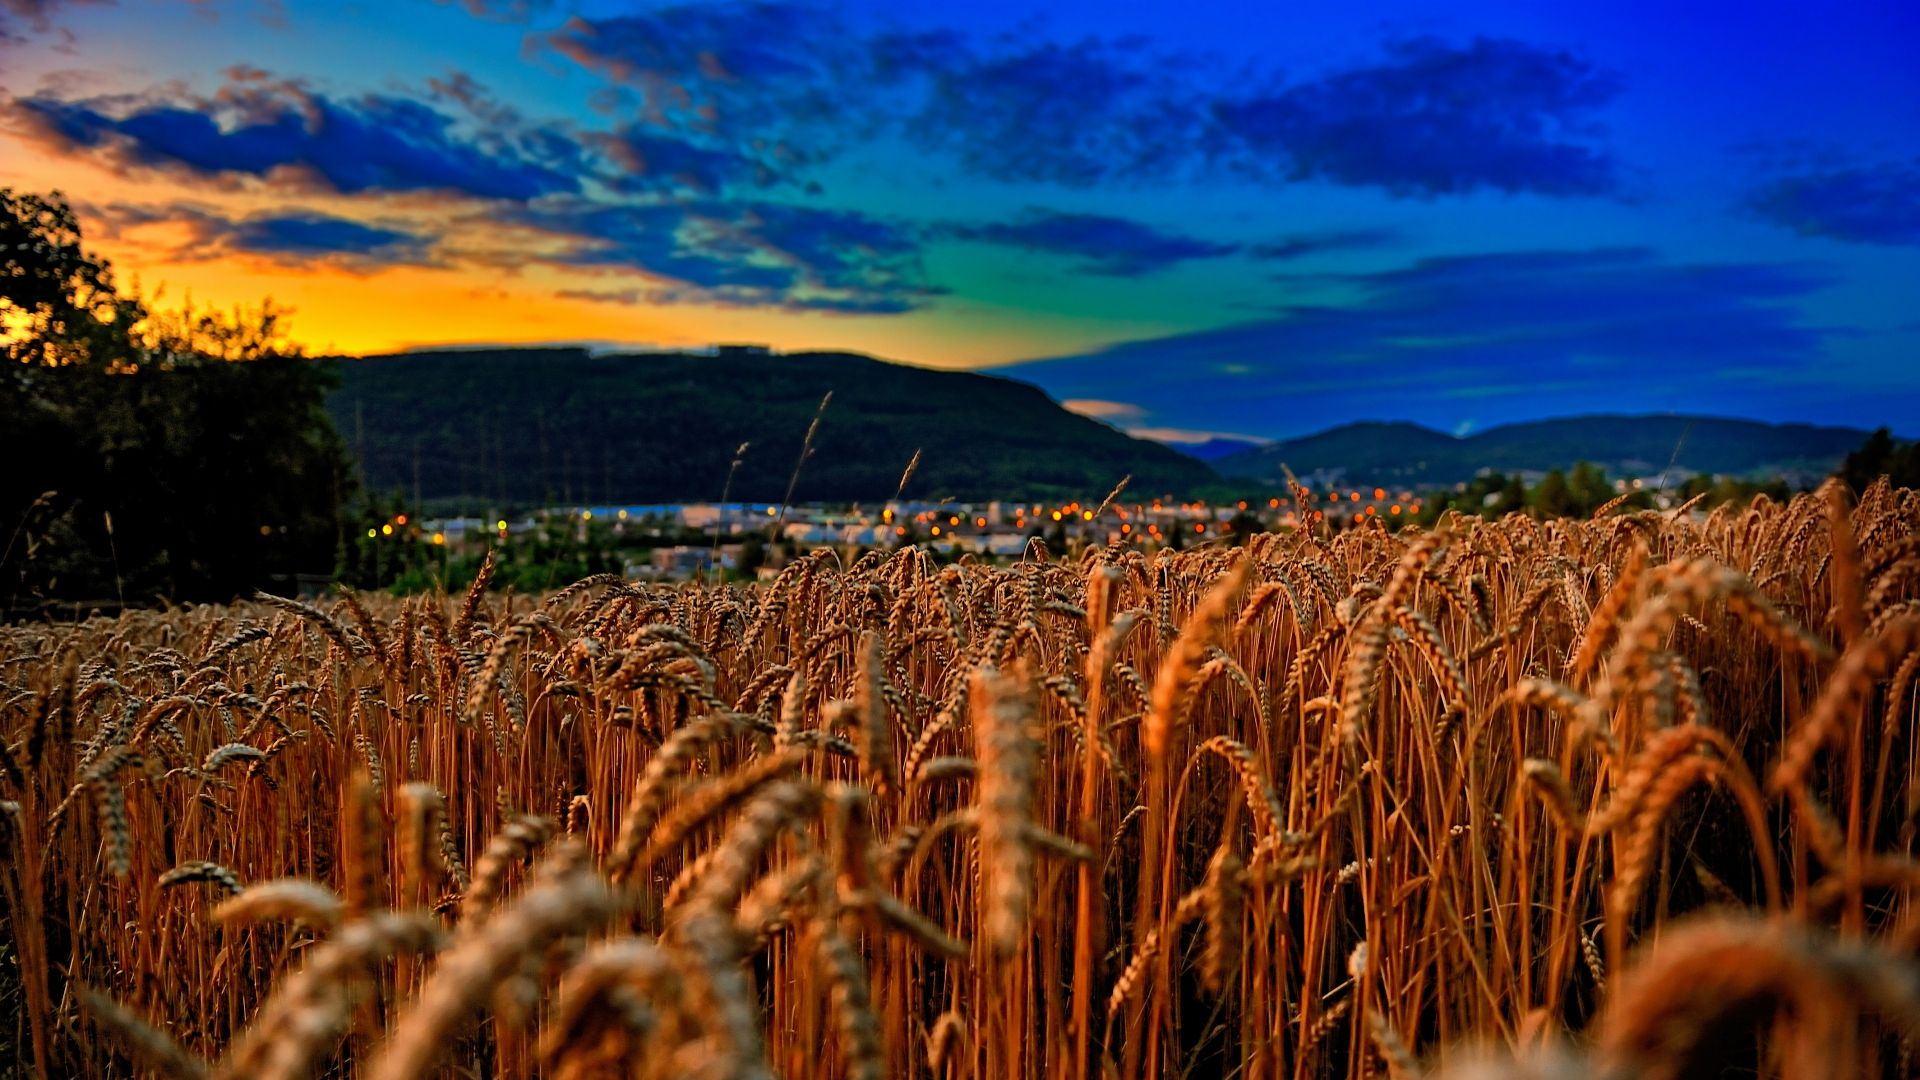 Wallpaper Field 4k Hd Wallpaper Wheat Spikes Sky: Wallpaper Wheat, 4k, 5k Wallpaper, Field, Sunset, Clouds